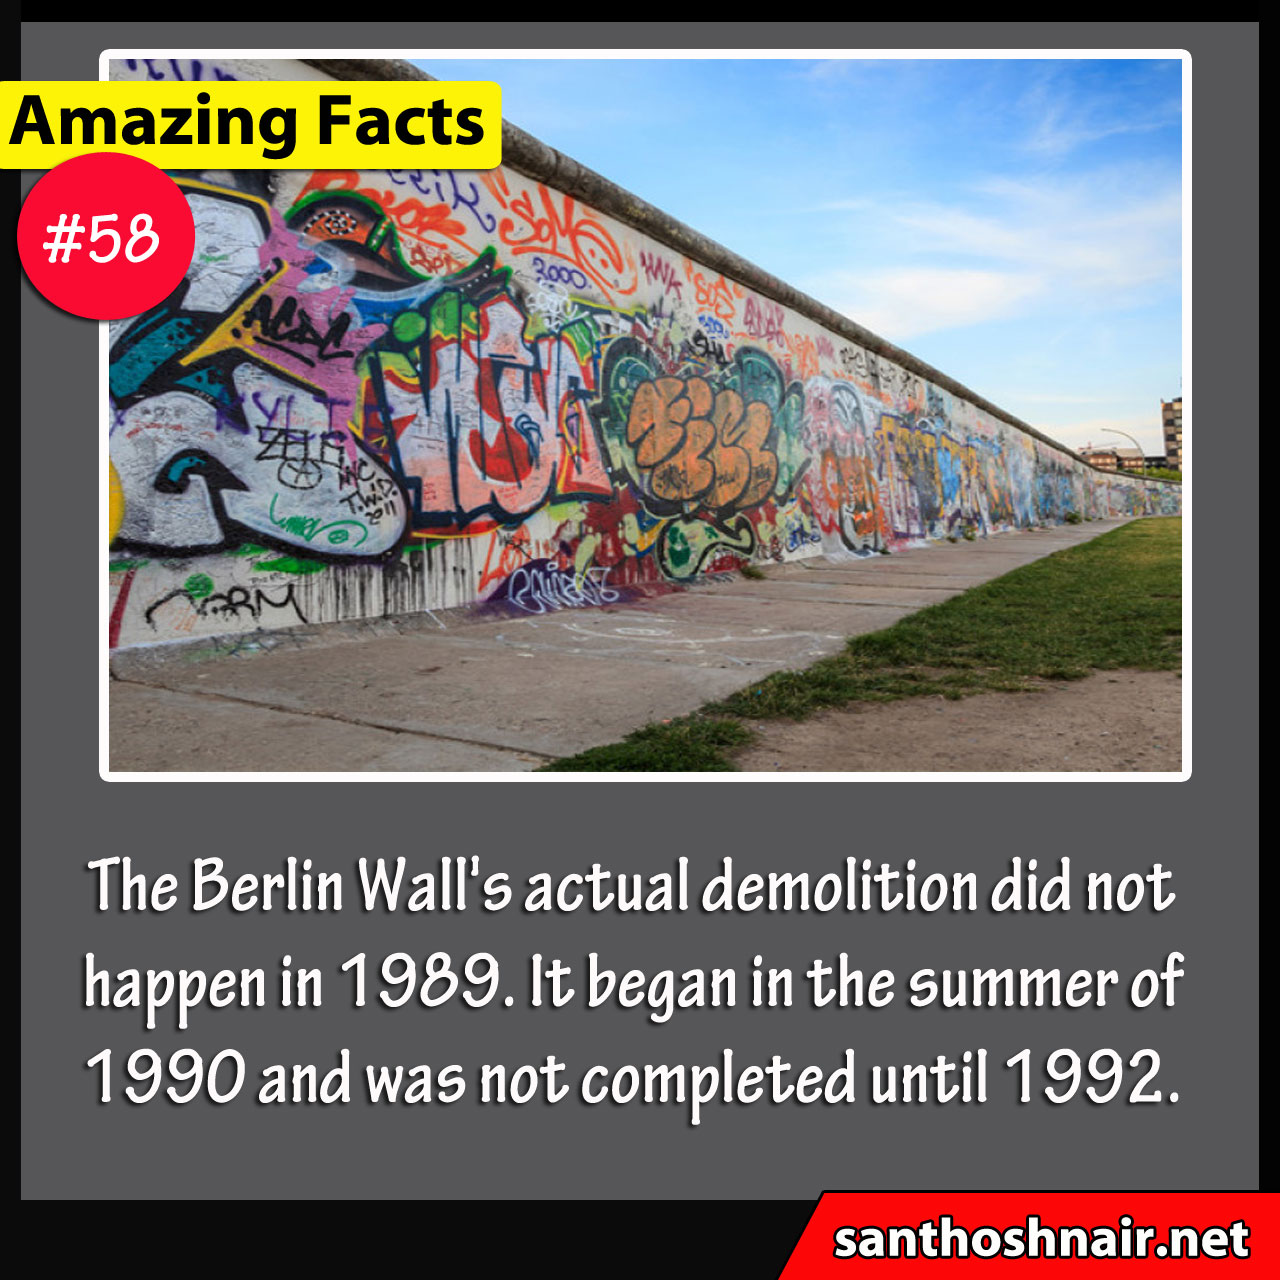 Amazing Facts #58 - Berlin Wall